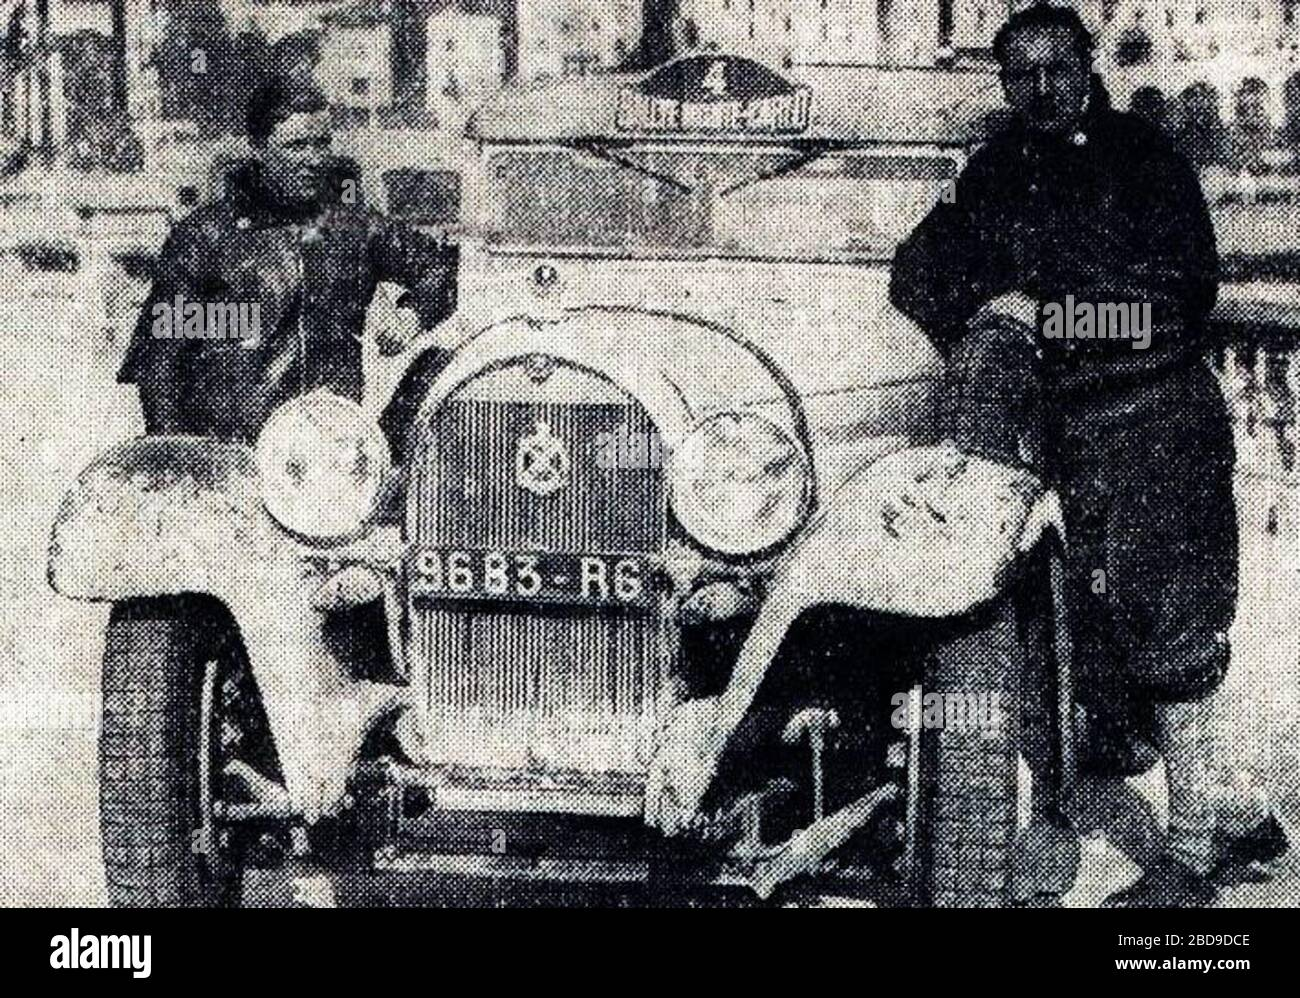 """Français : Rallye Monte Carlo 1934, victoire de Gas (G.) et Trévoux (D.) sur Hotchkiss.English: Entry #4 in the 1934 Rallye Monte Carlo is a Hotchiss AM 80 S 3,485 ccm (license 9683 RT), driven by Louis Gas (left in picture) and Jean Trévoux (to the right).  They had started in Athens[1] and were also the winner this year!; 16 October 2017; L'Auto-vélo, 26 janvier 1934; L'Auto-vélo; "" Stock Photo"